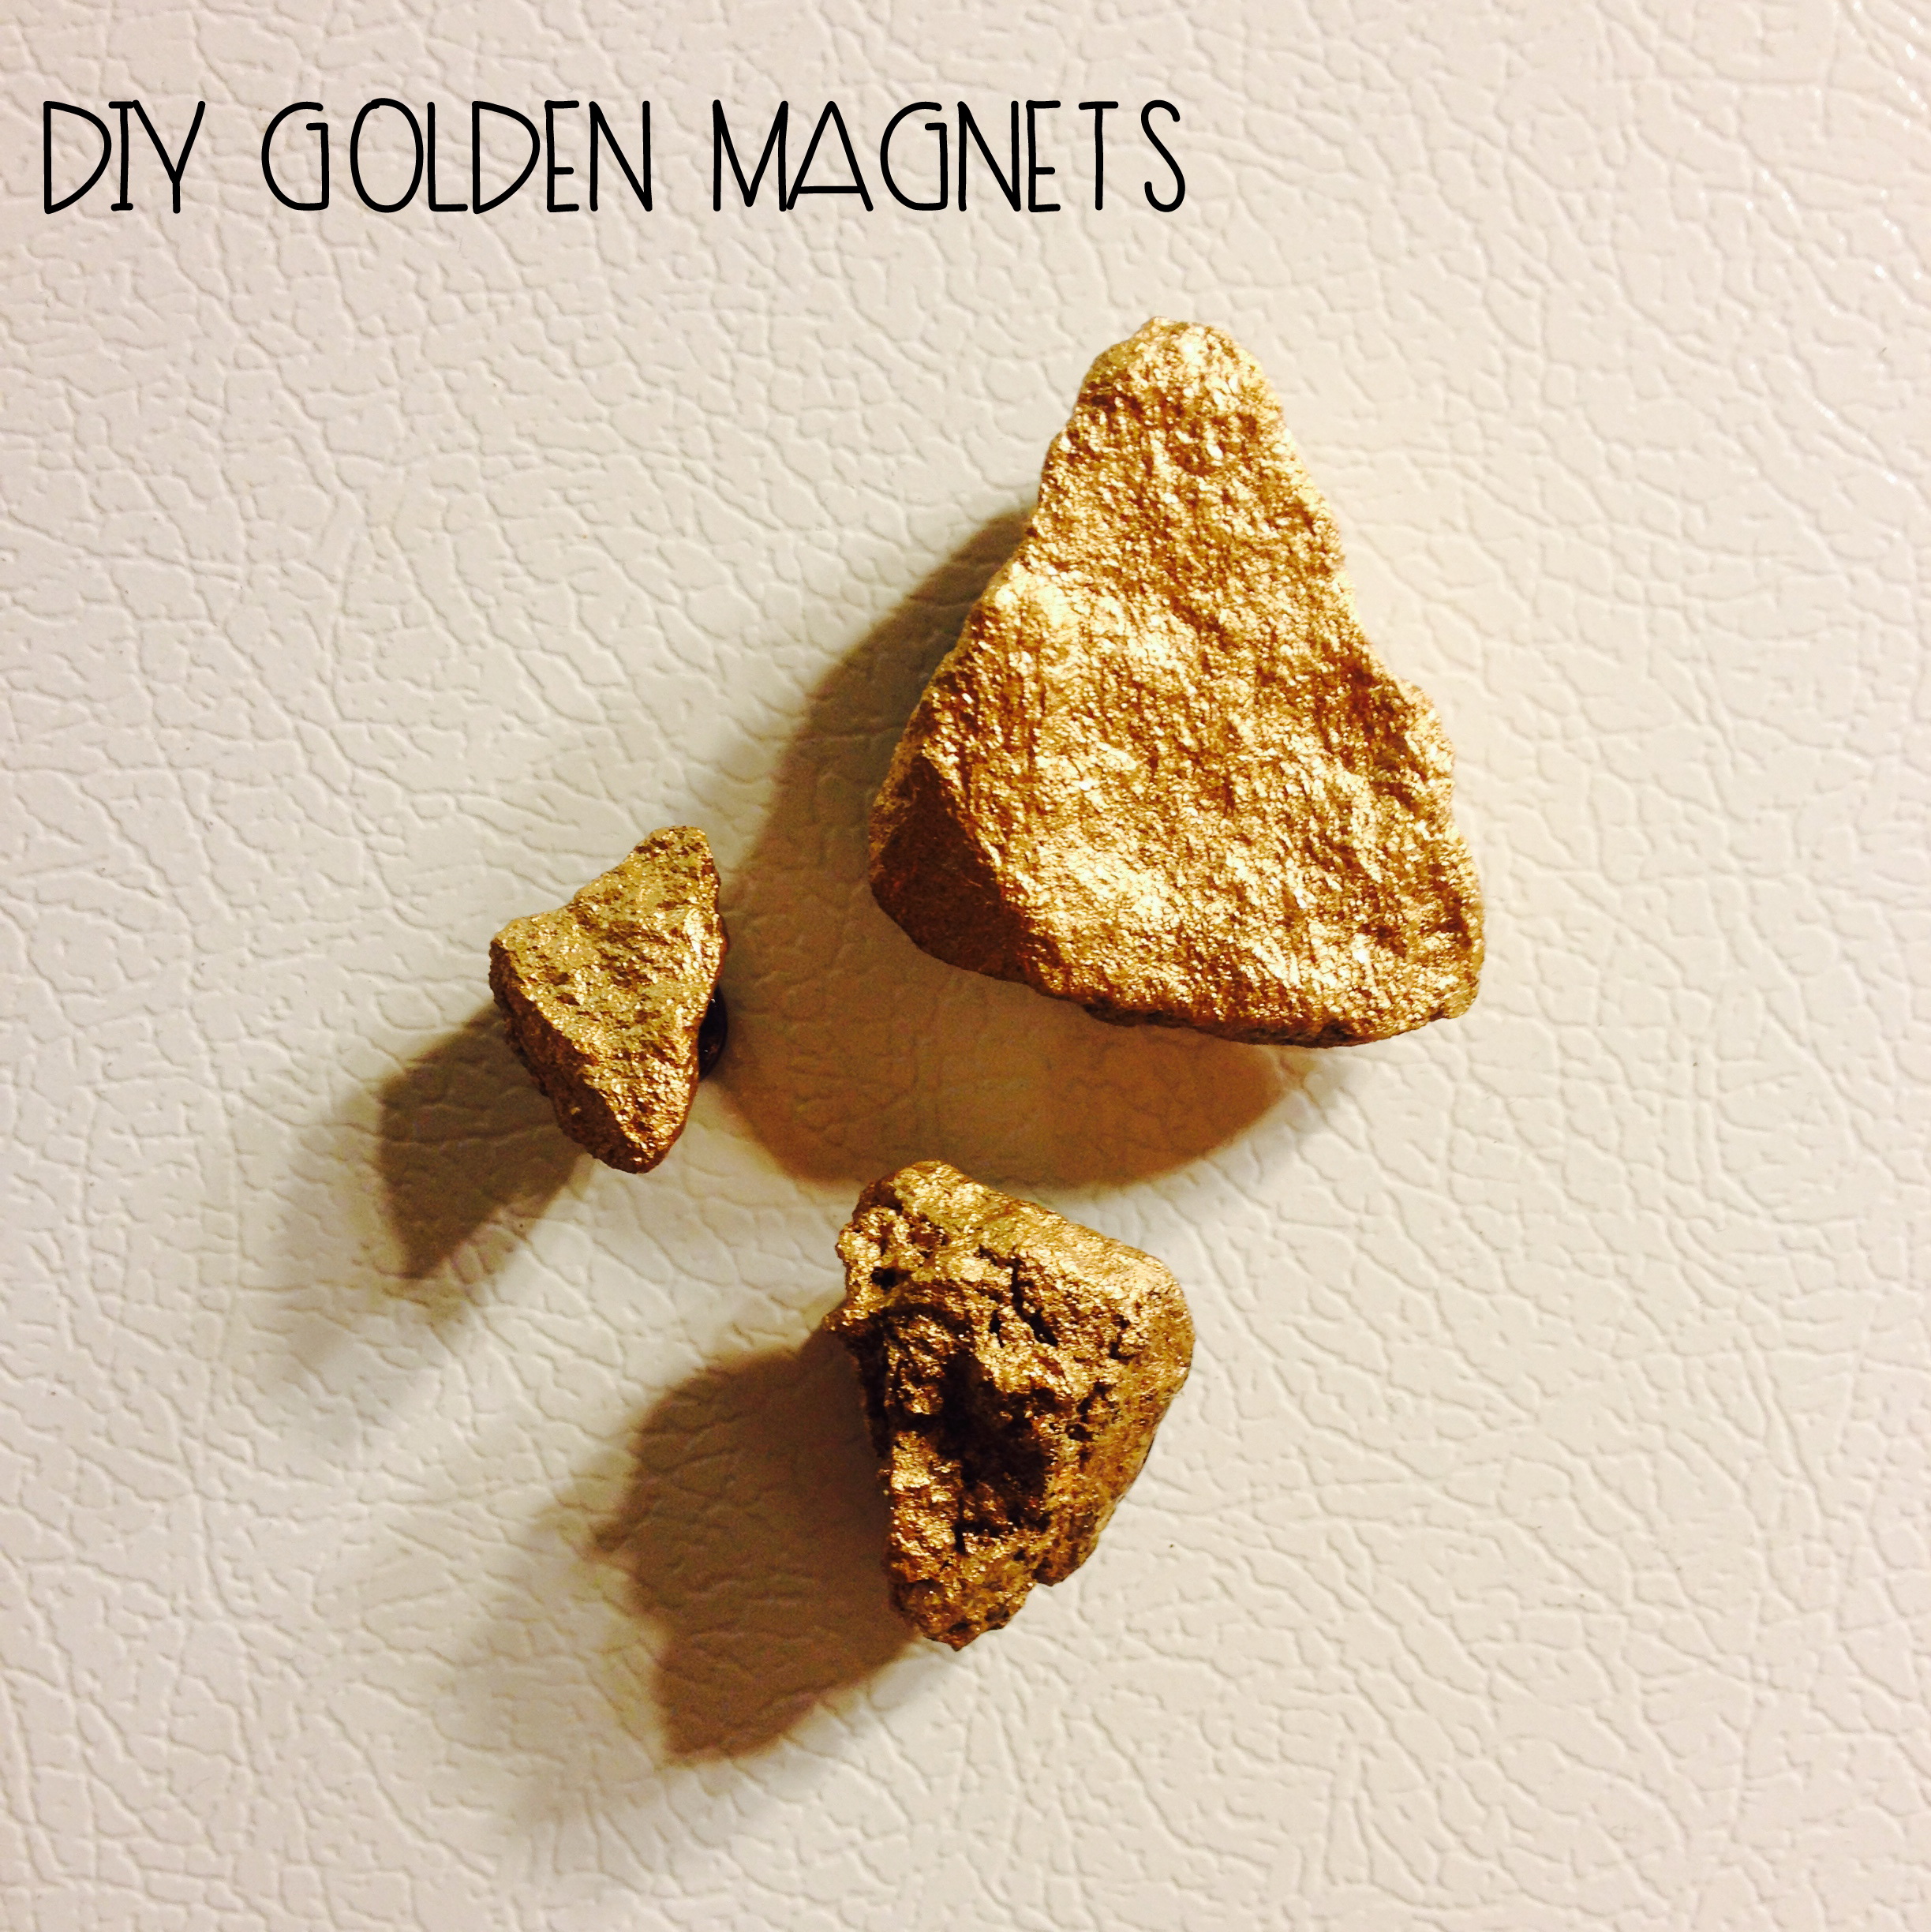 #DIY Golden Magnets | MrsAmberApple